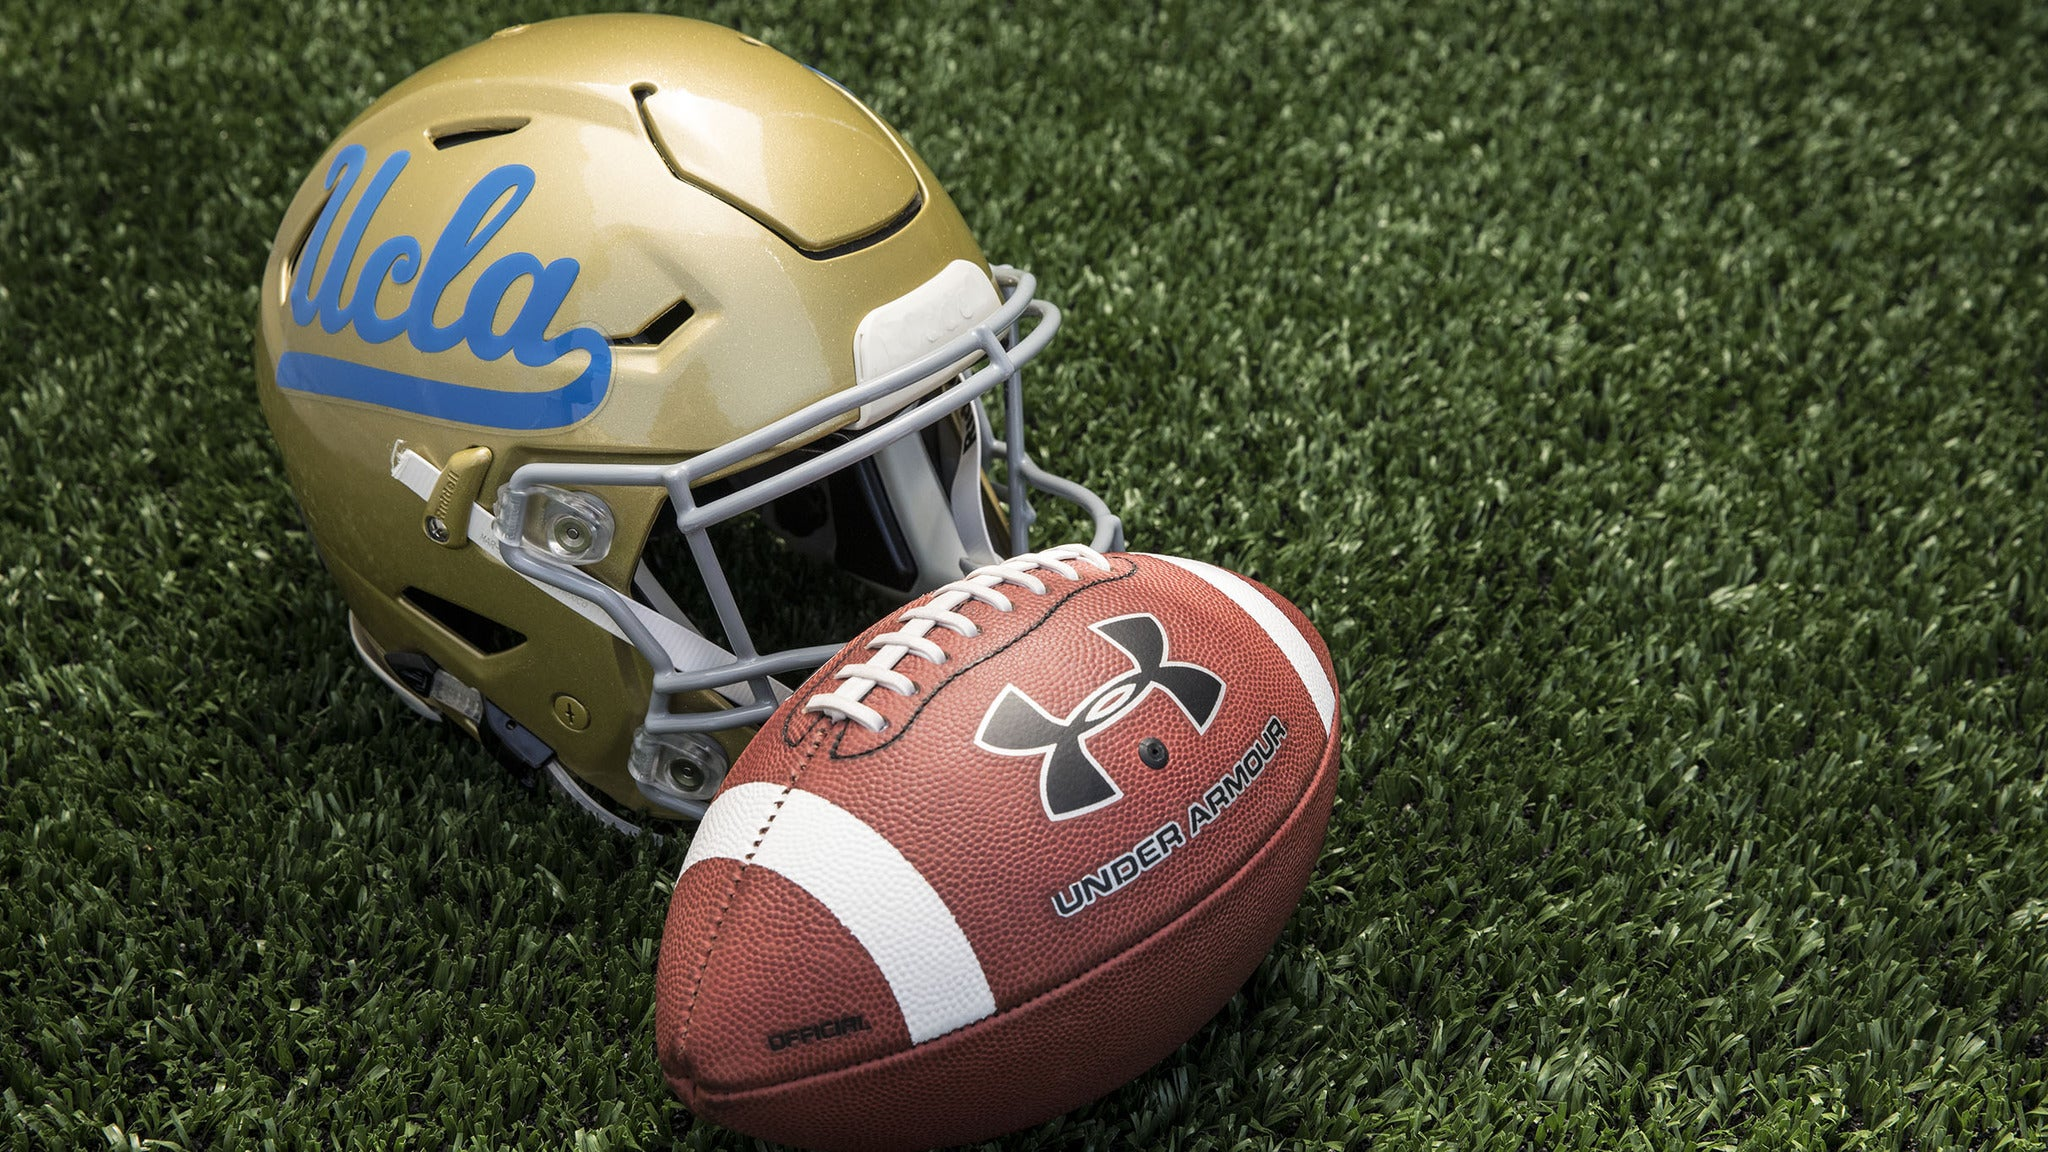 UCLA Bruins Football vs. Stanford Cardinal Football